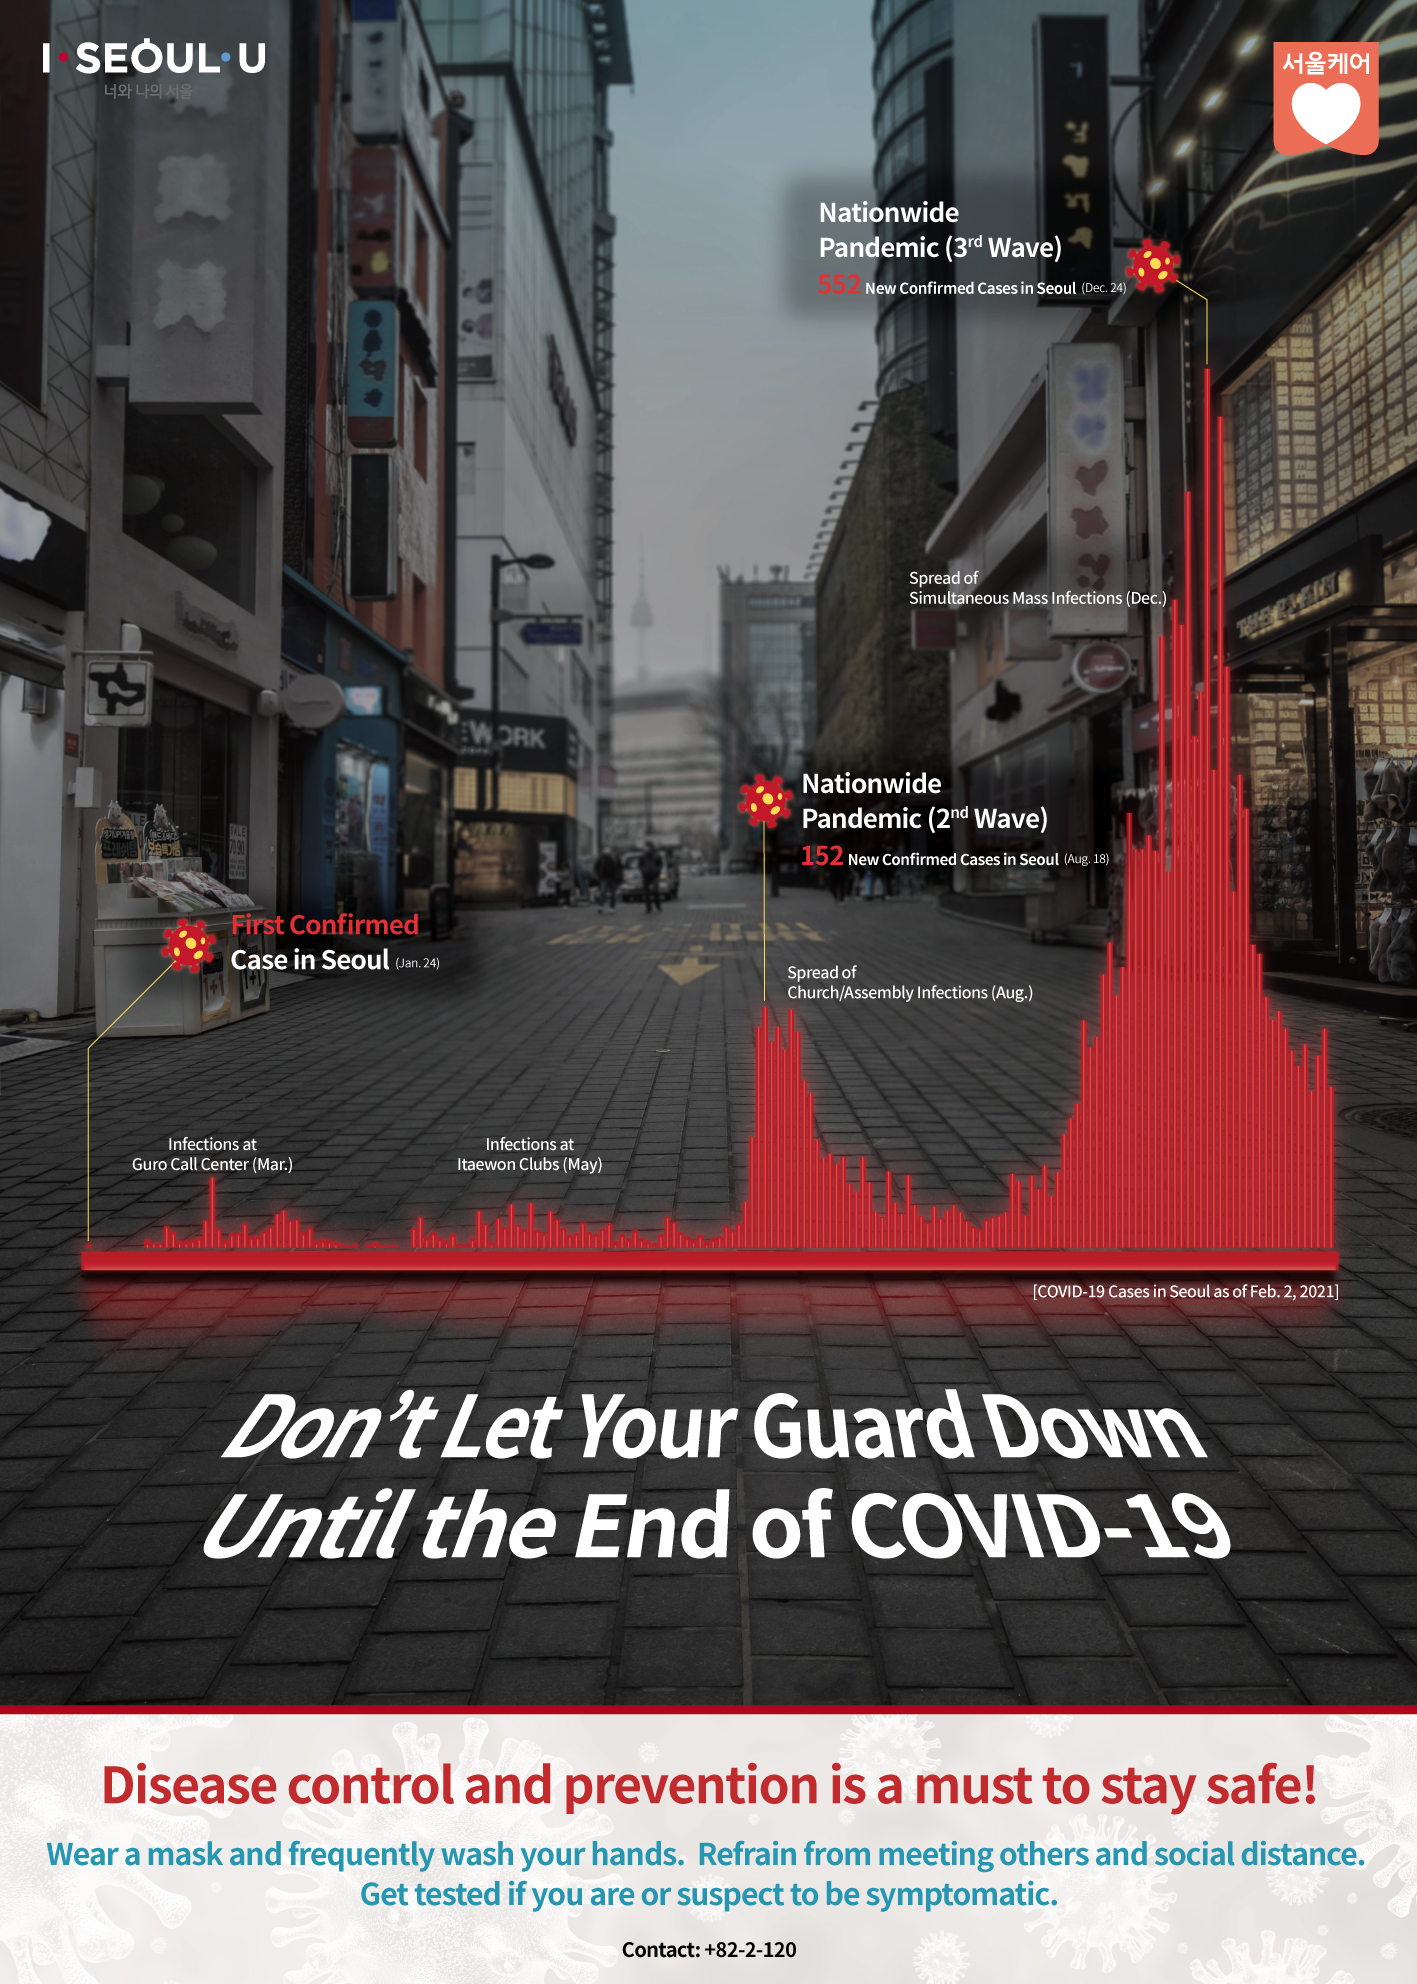 Don't Let Your Guard Down Until the End of COVID-19